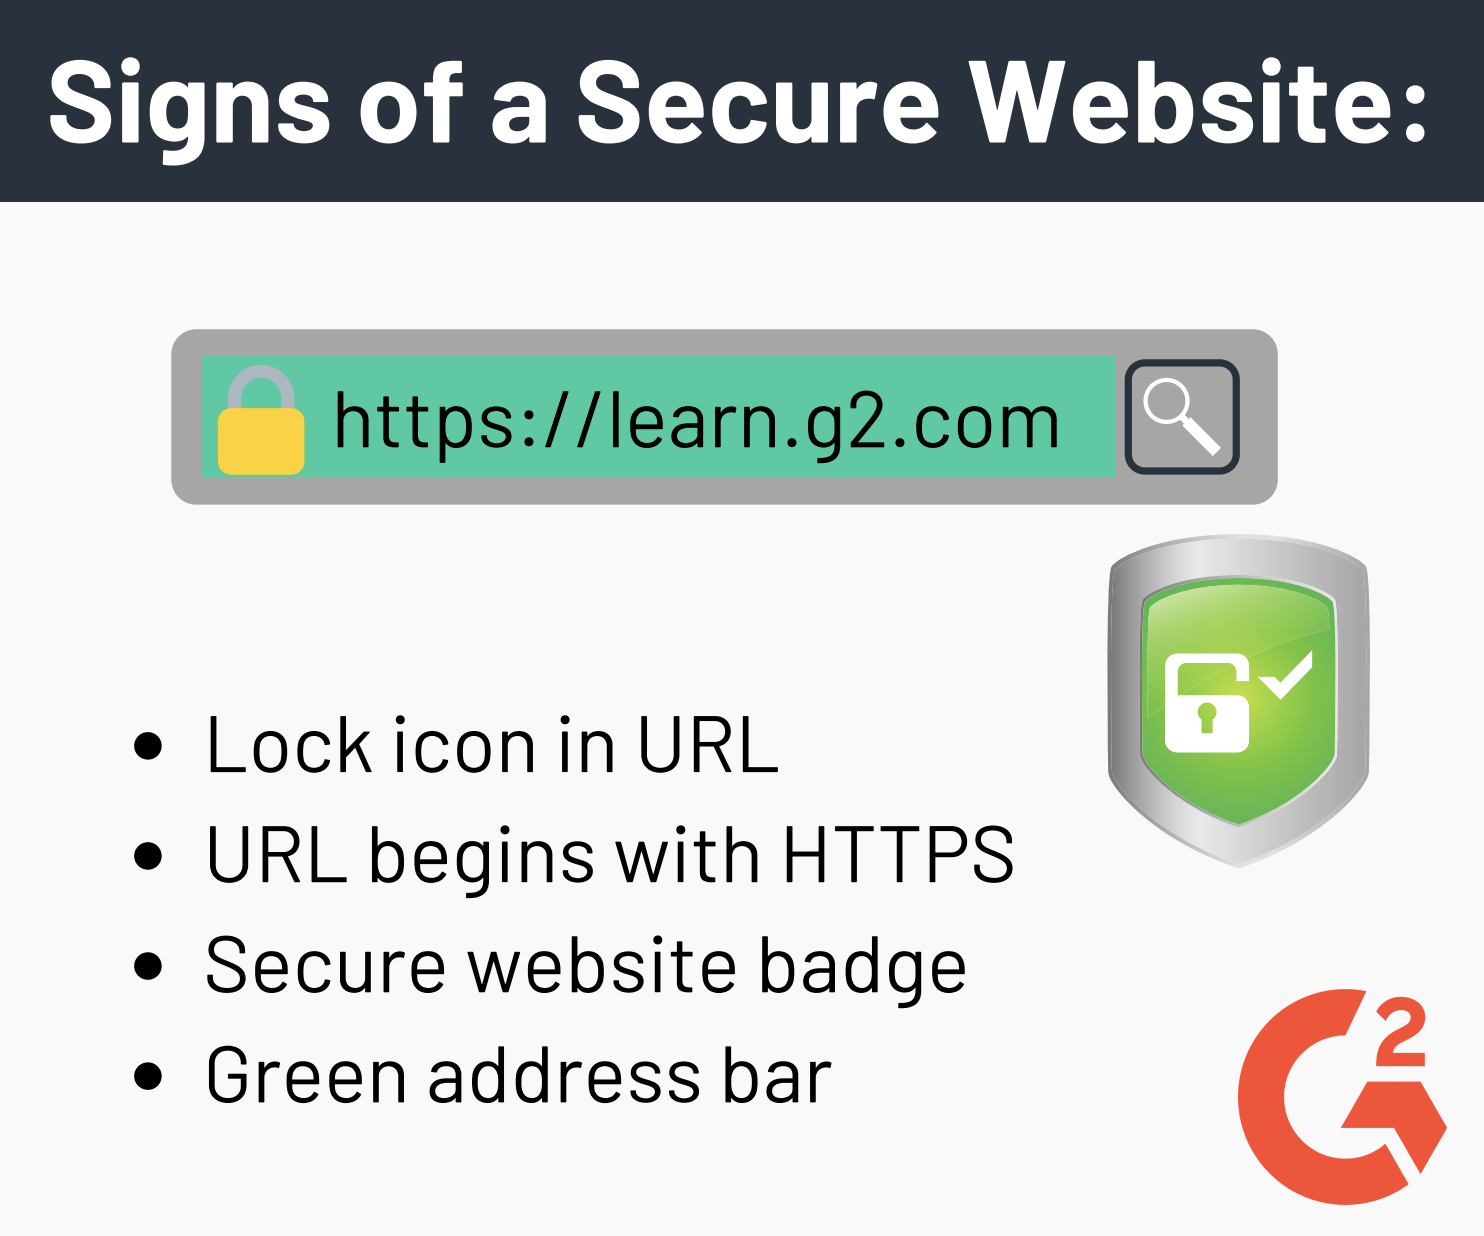 Signs of a Secure Website